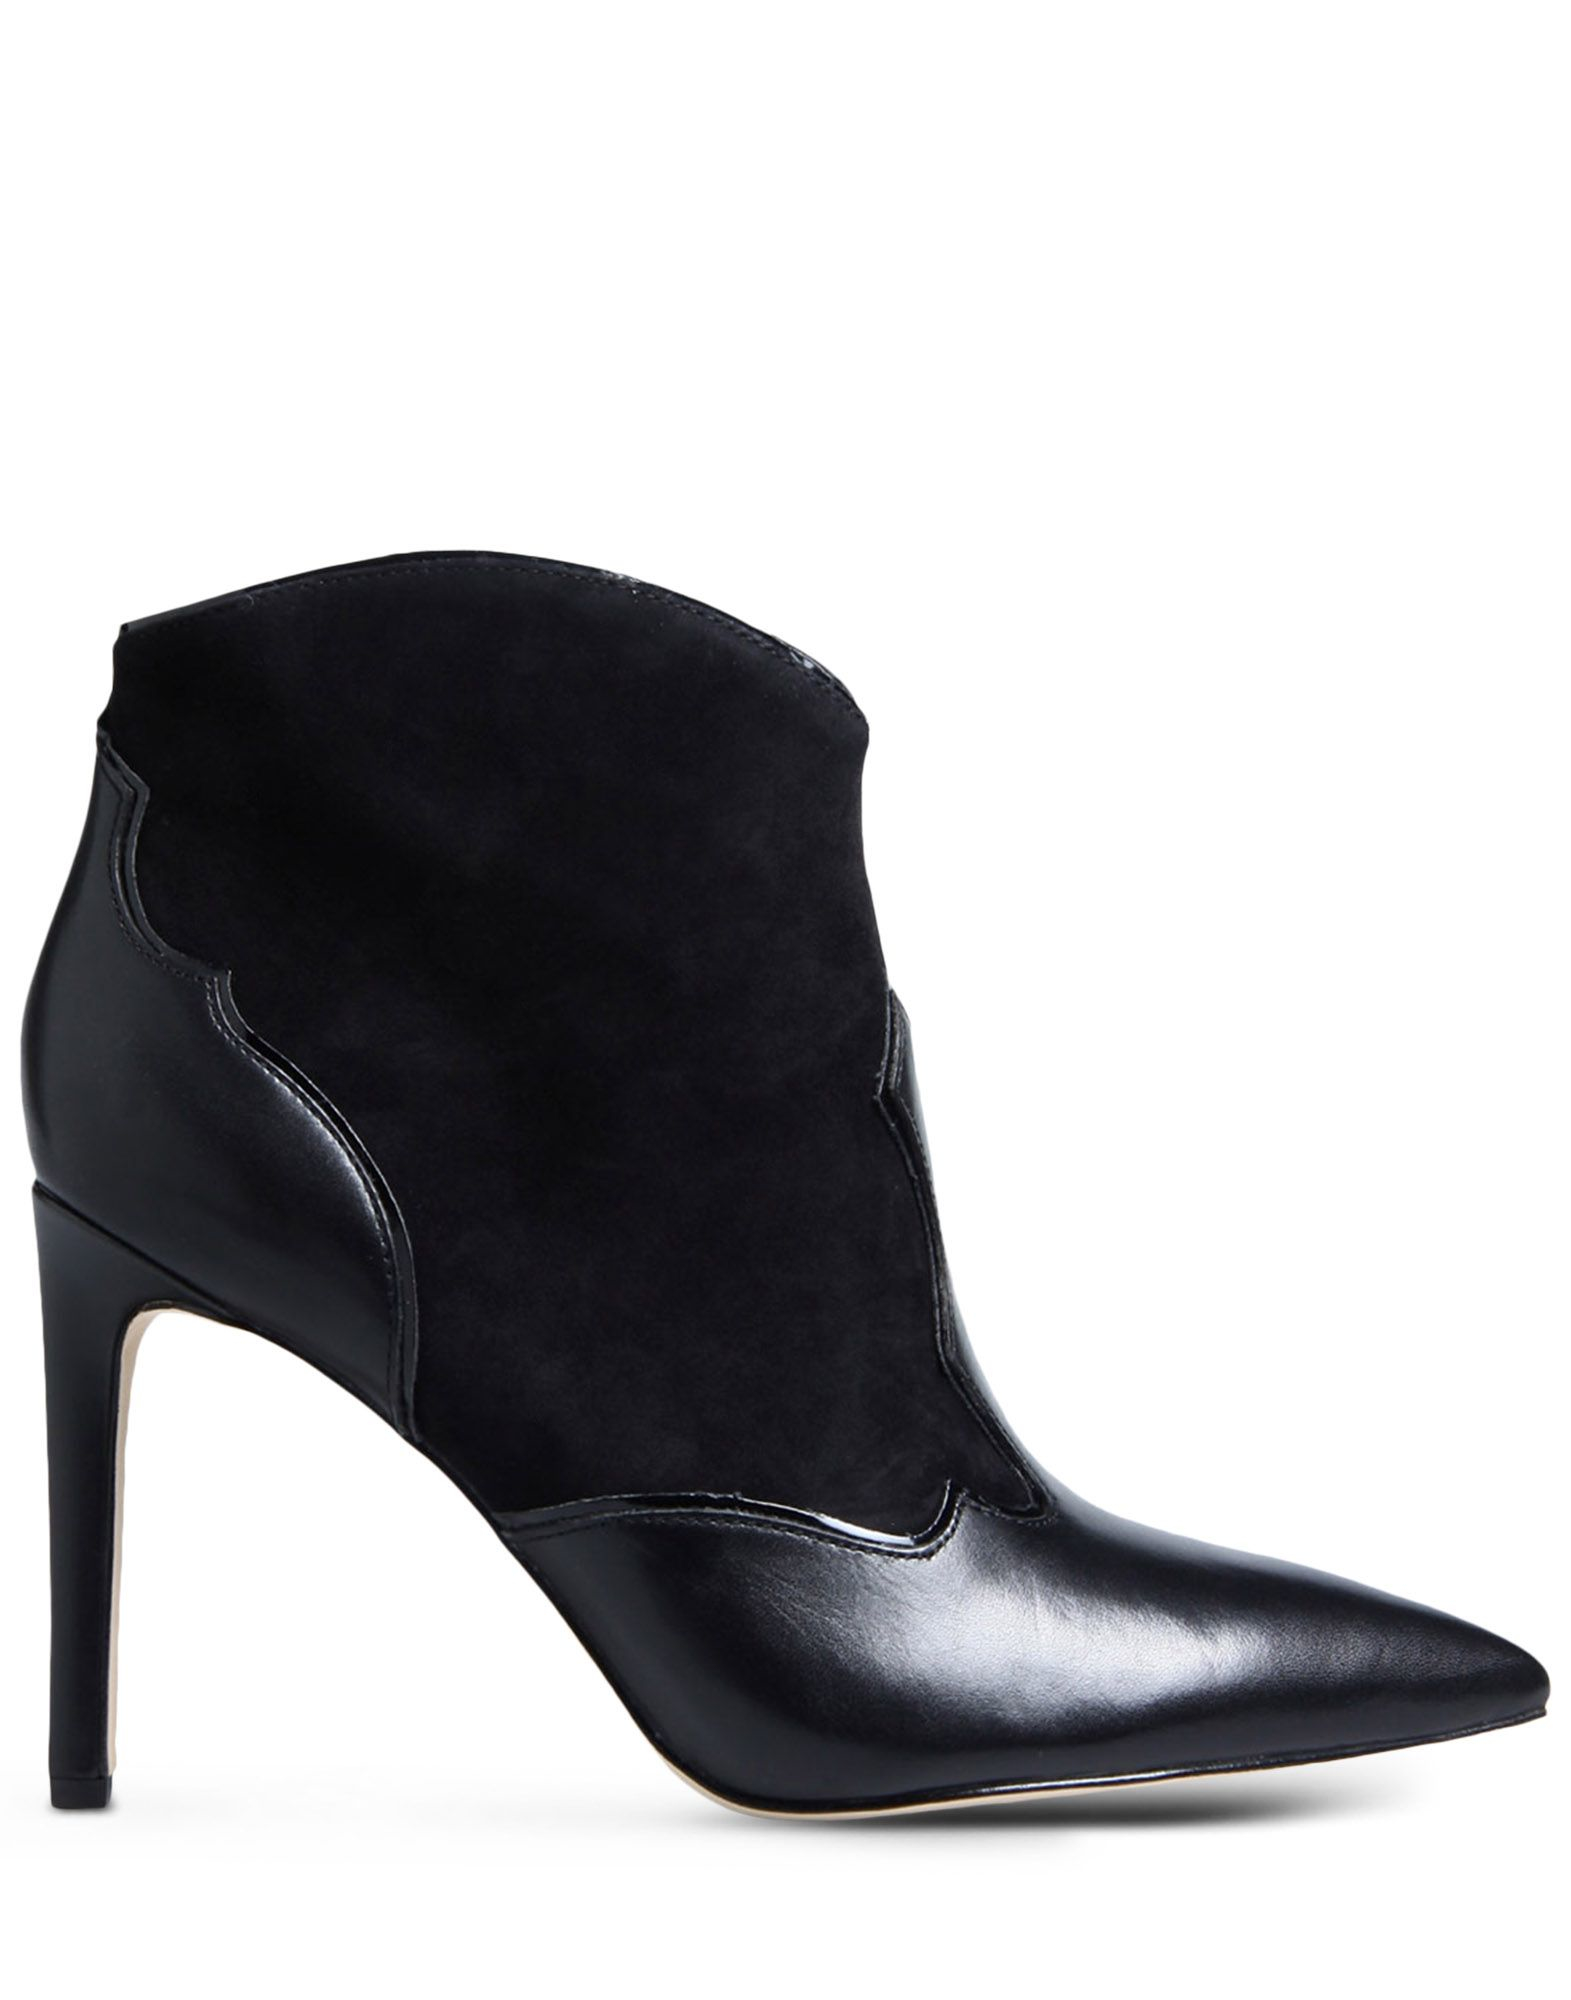 sam edelman pointed toe leather ankle boots in black lyst